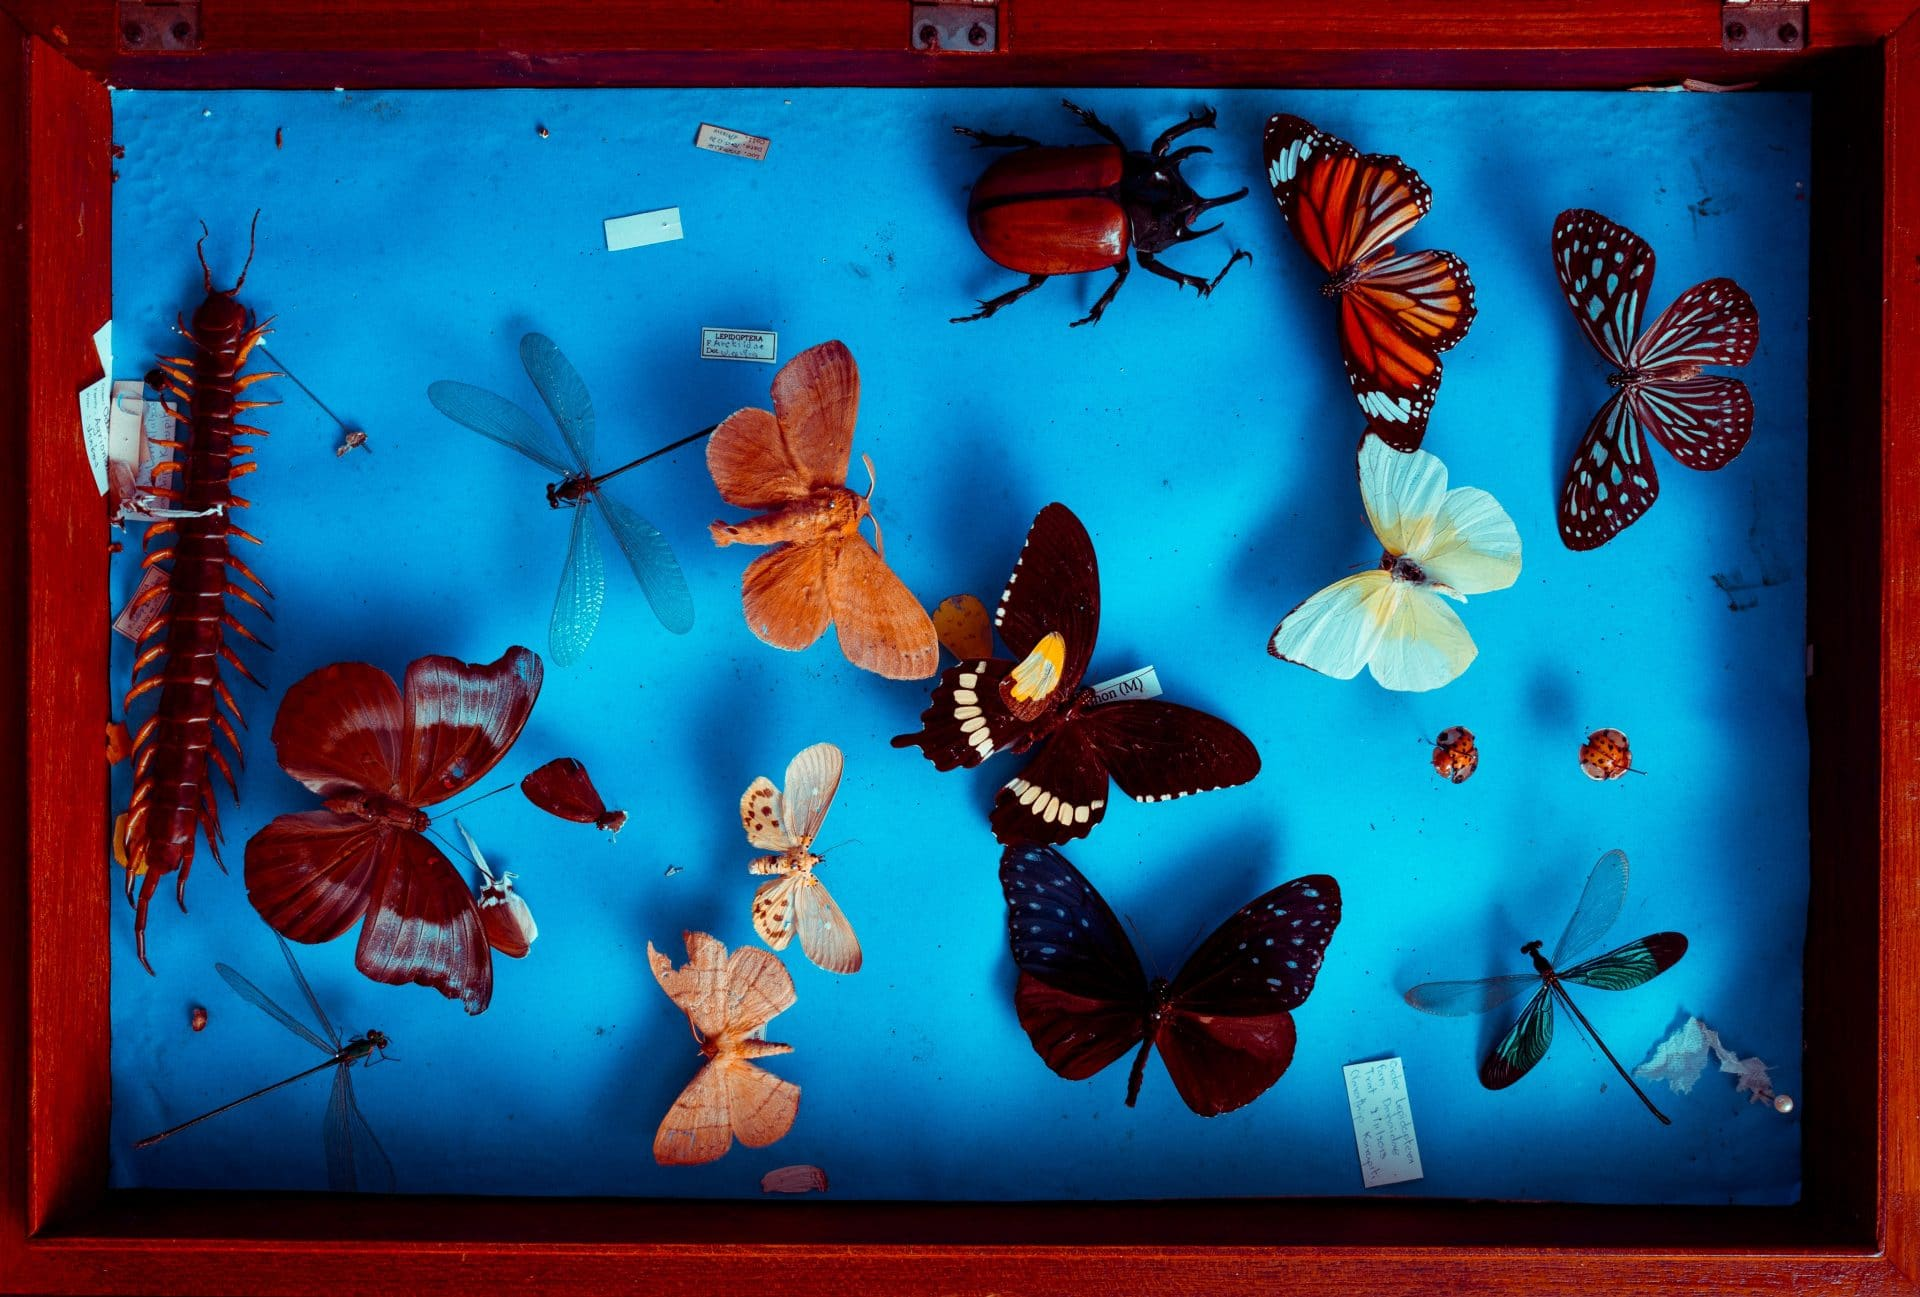 Photo of insects on a display frame